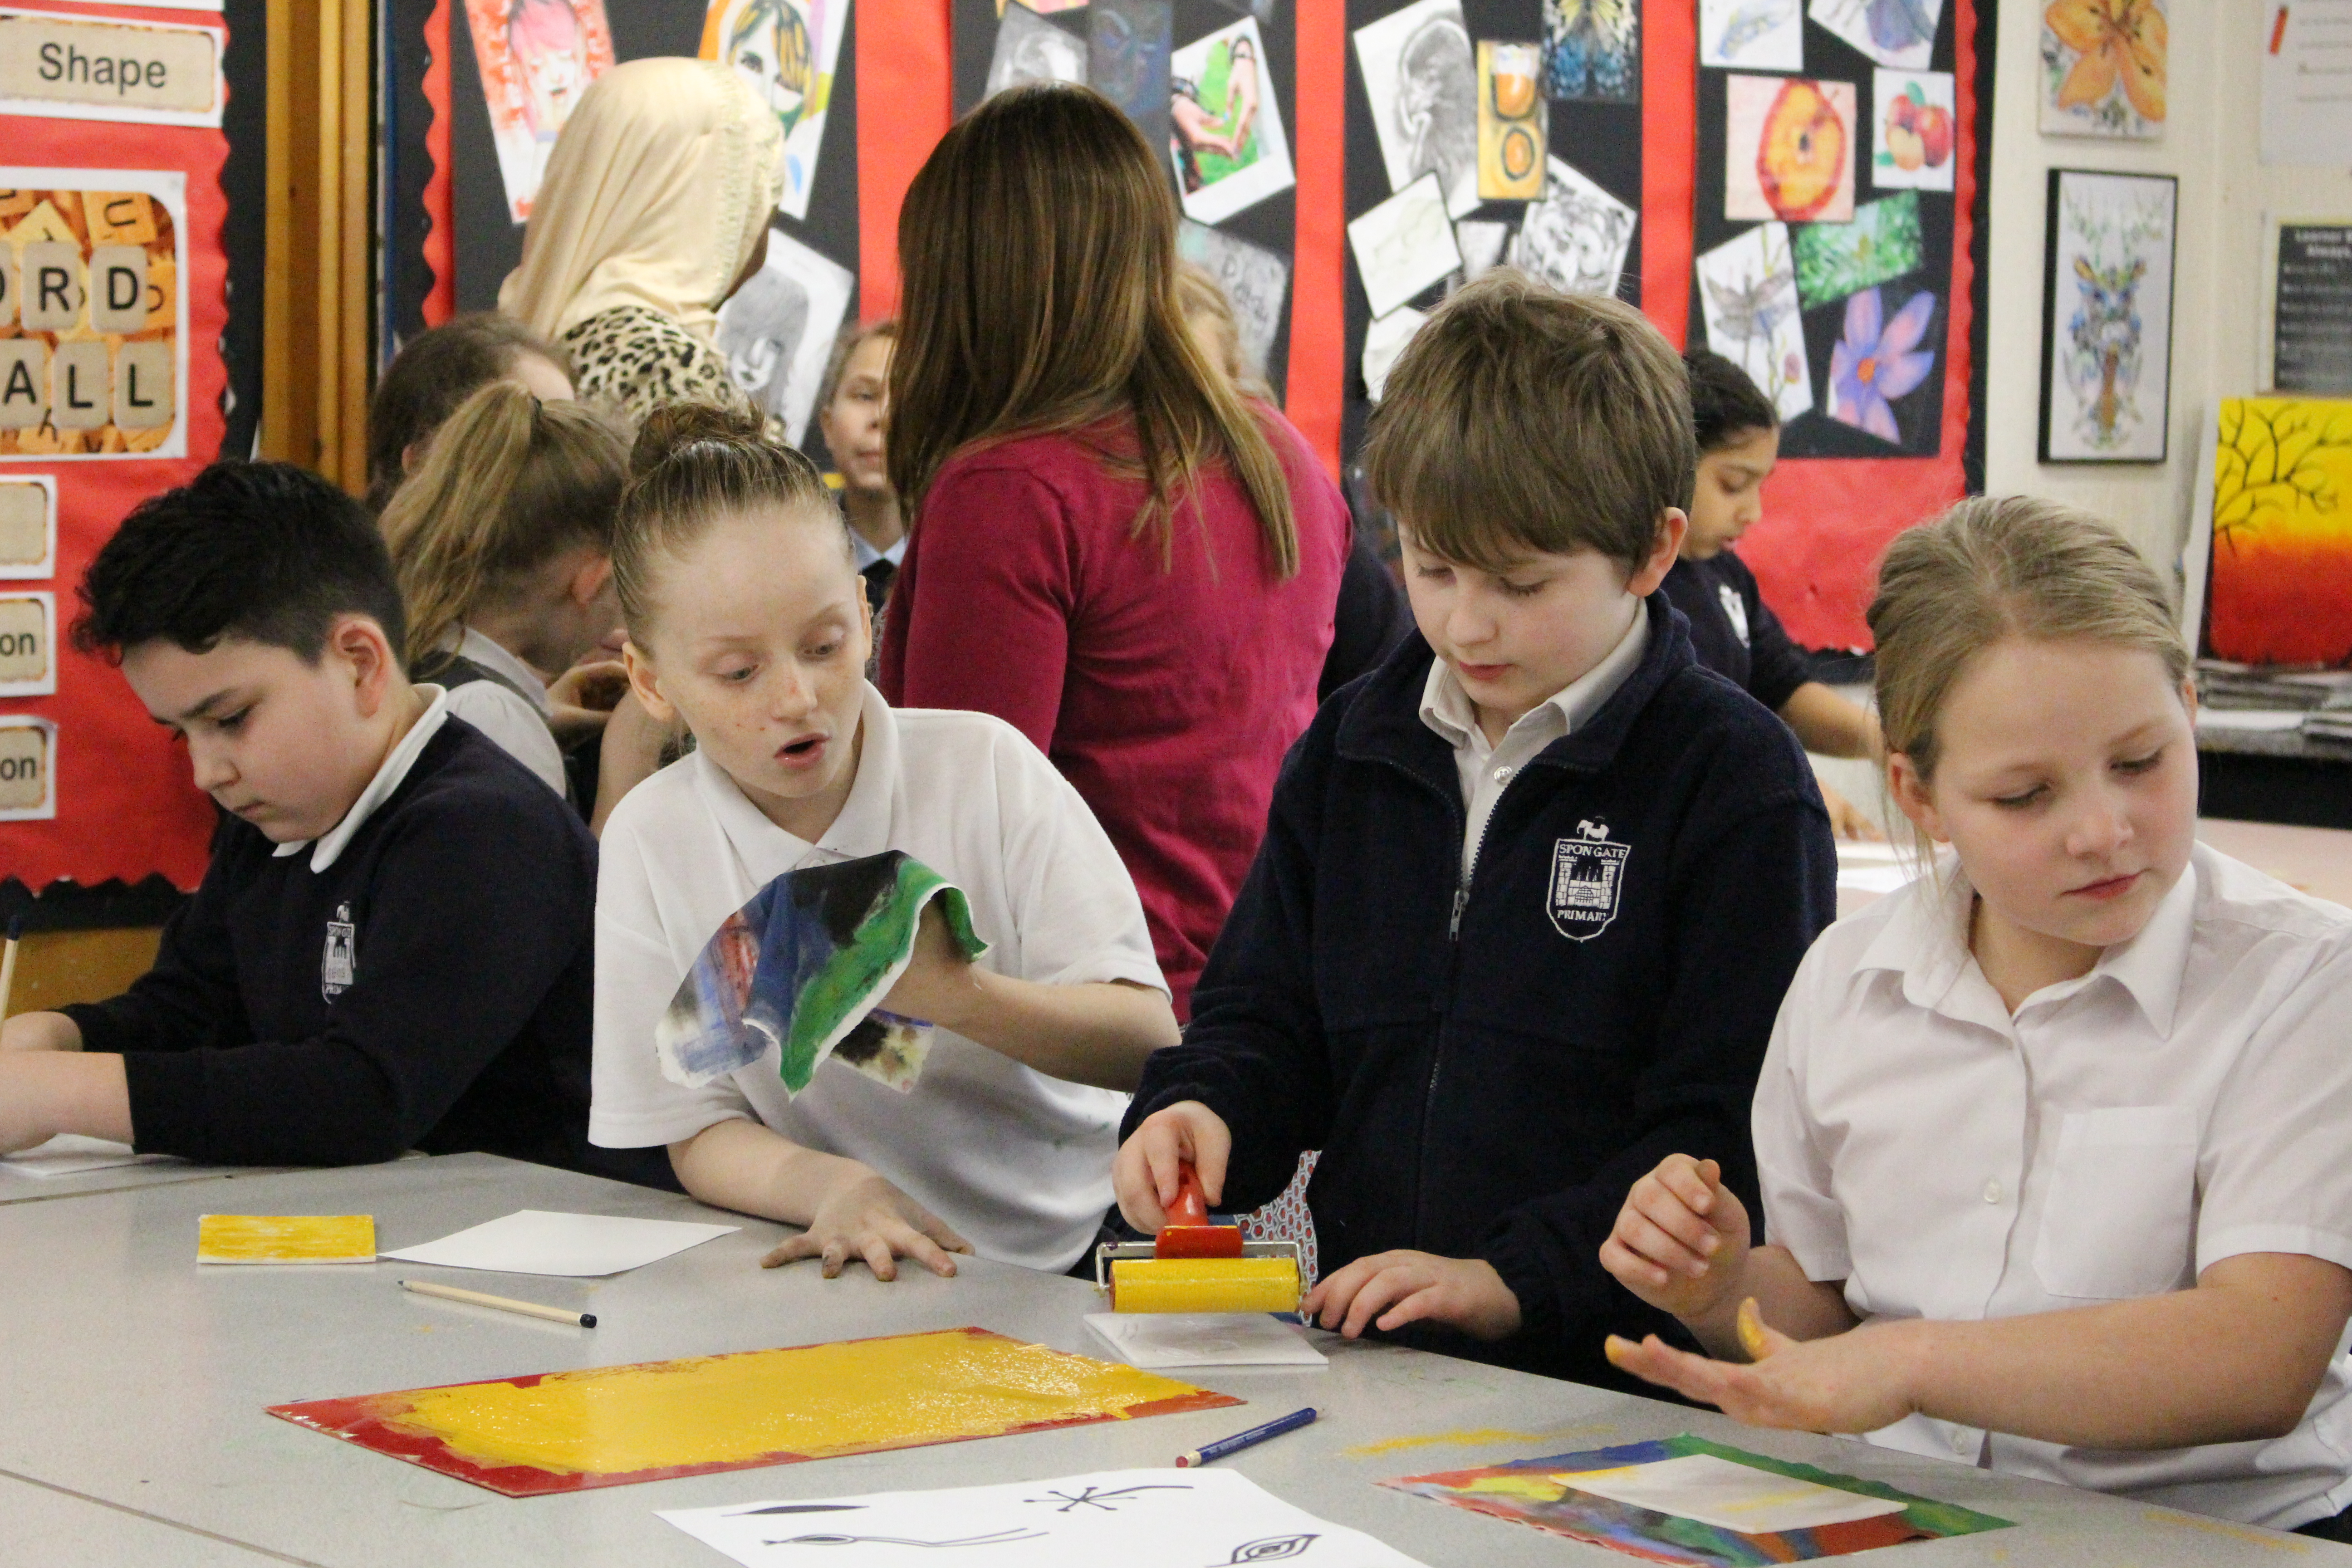 Year 5 Spon Gate Primary School students recreate famous art work